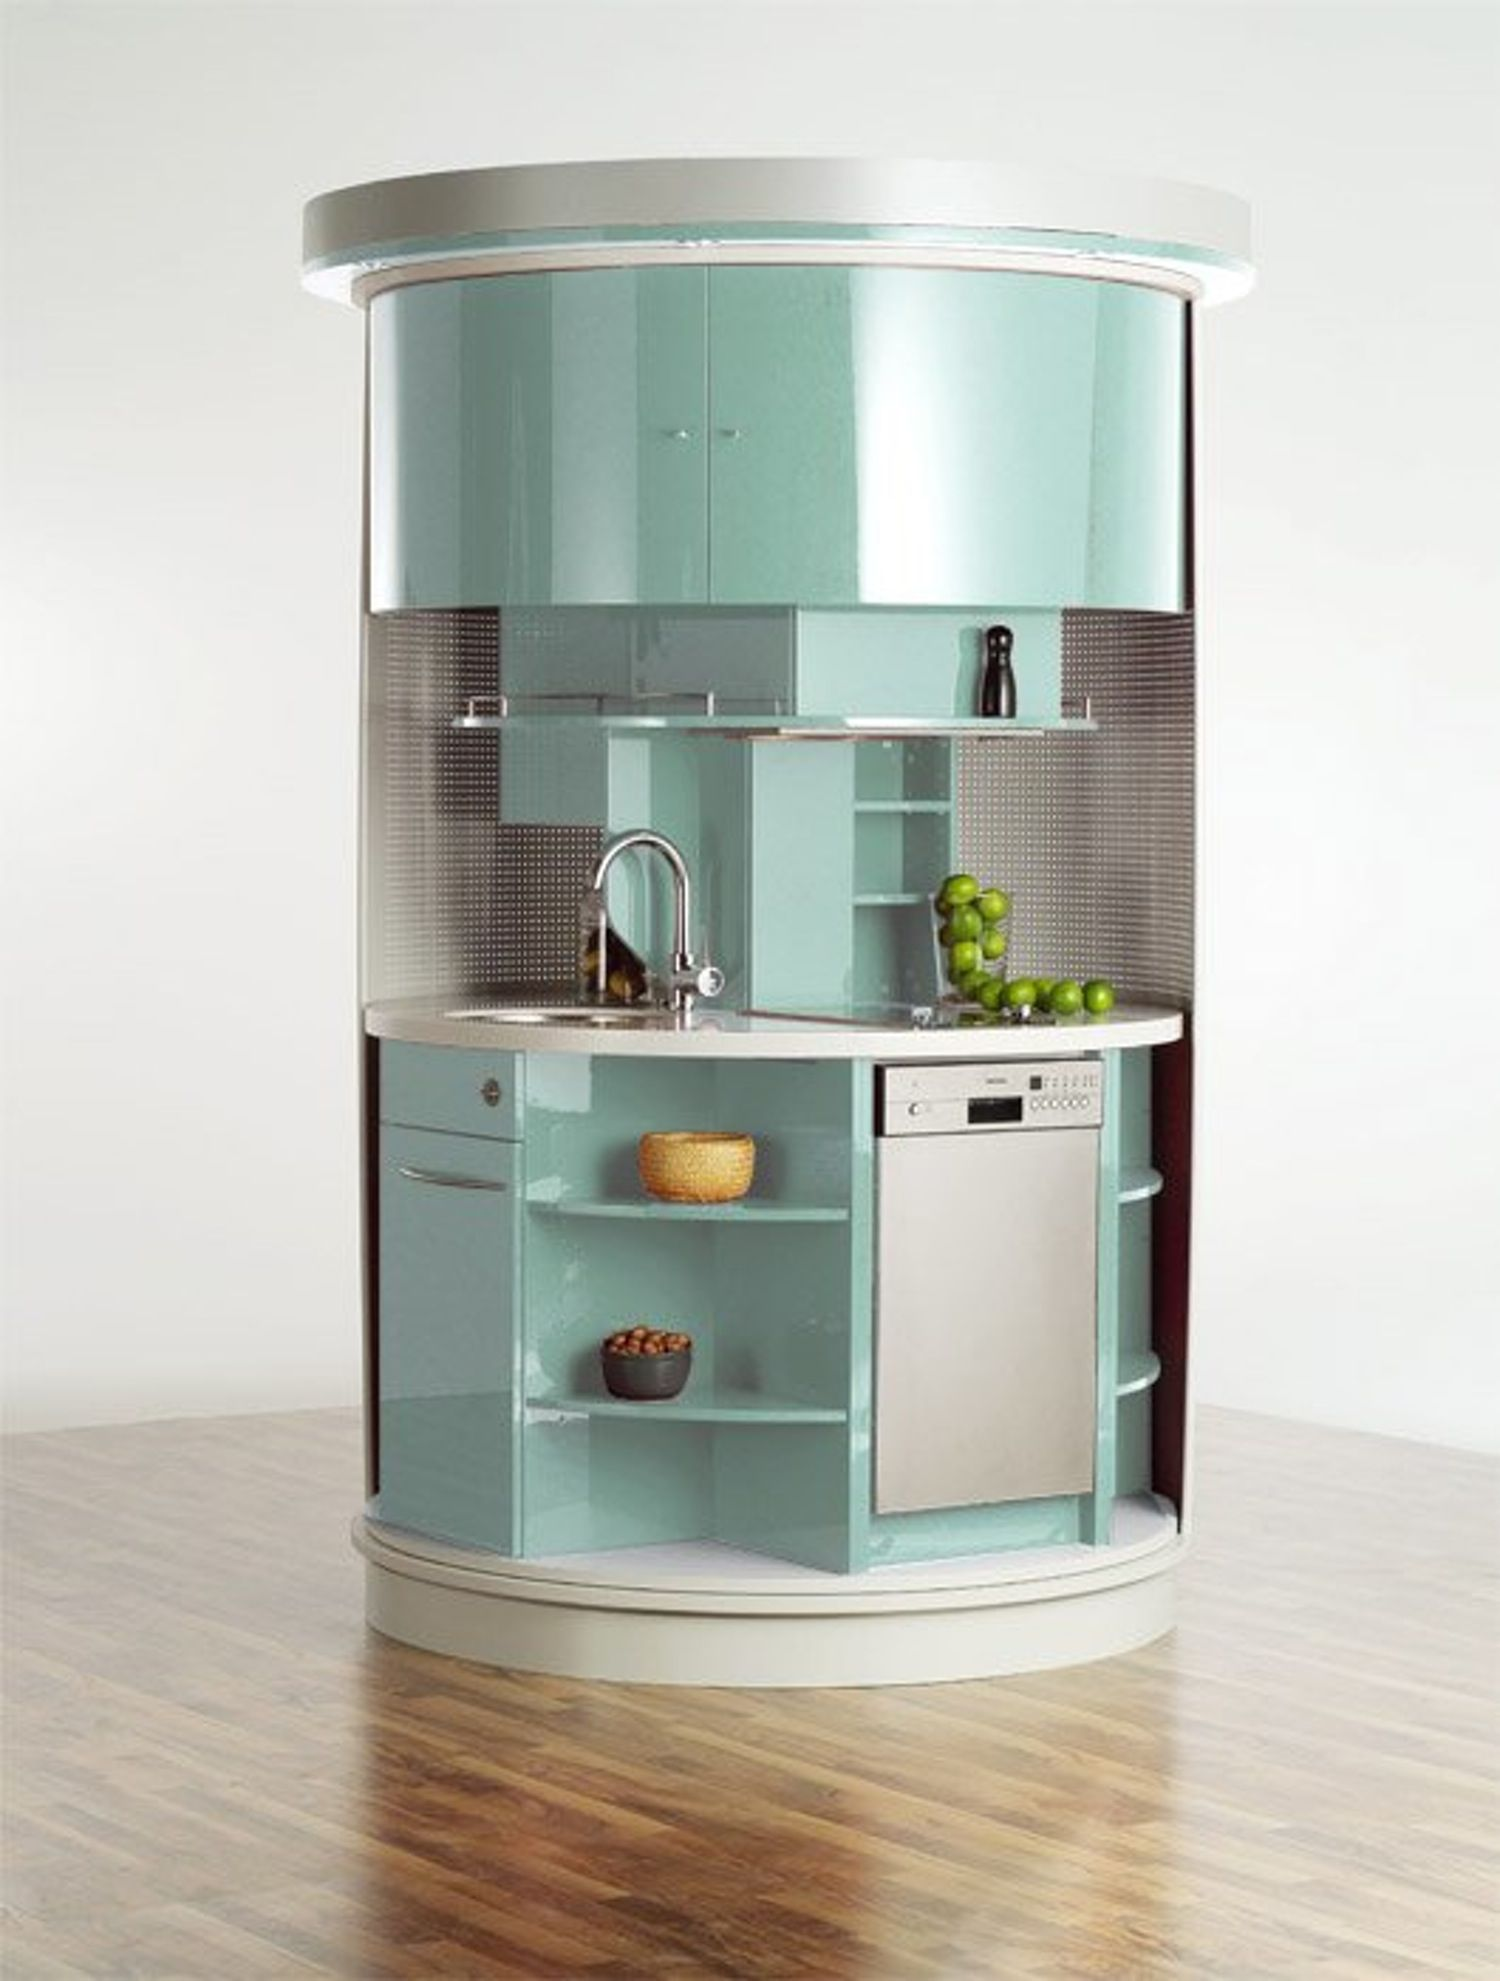 A Circular Kitchen that Saves Space | Kitchens, Spaces and Kitchen ...